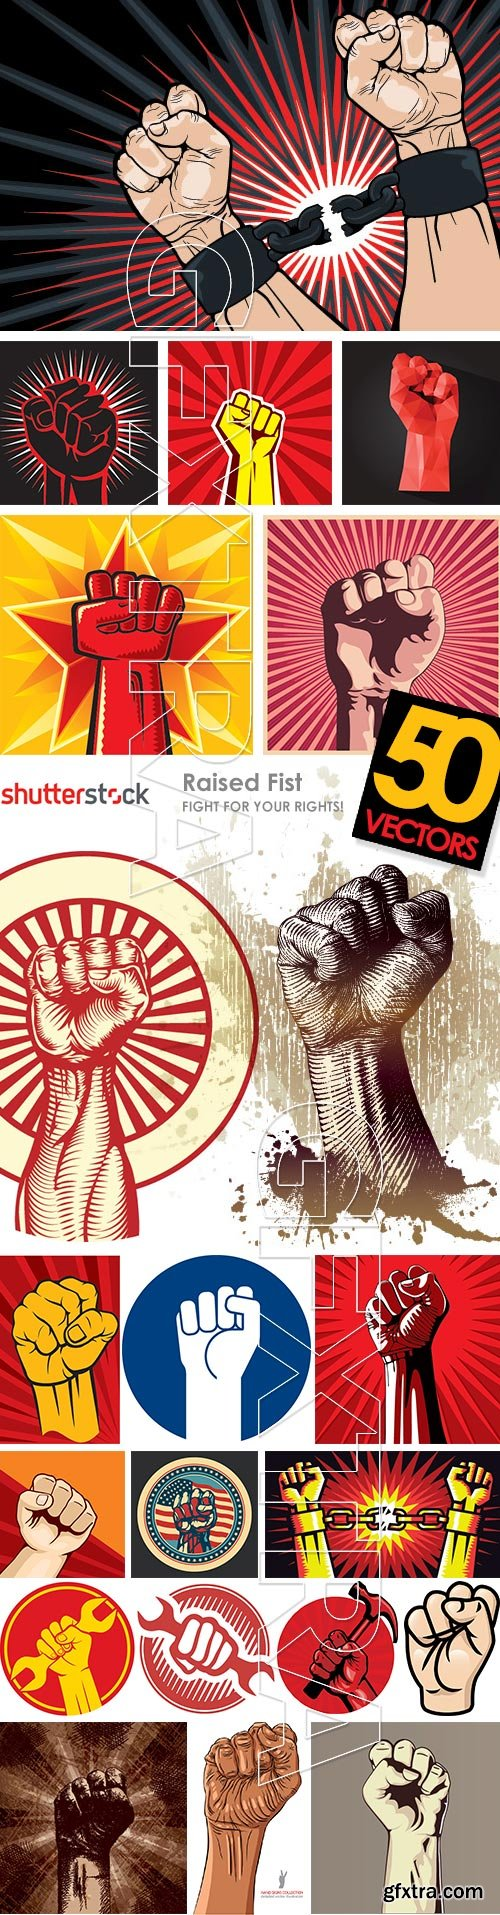 Raised Fist - Fight for Your Rights 50xEPS